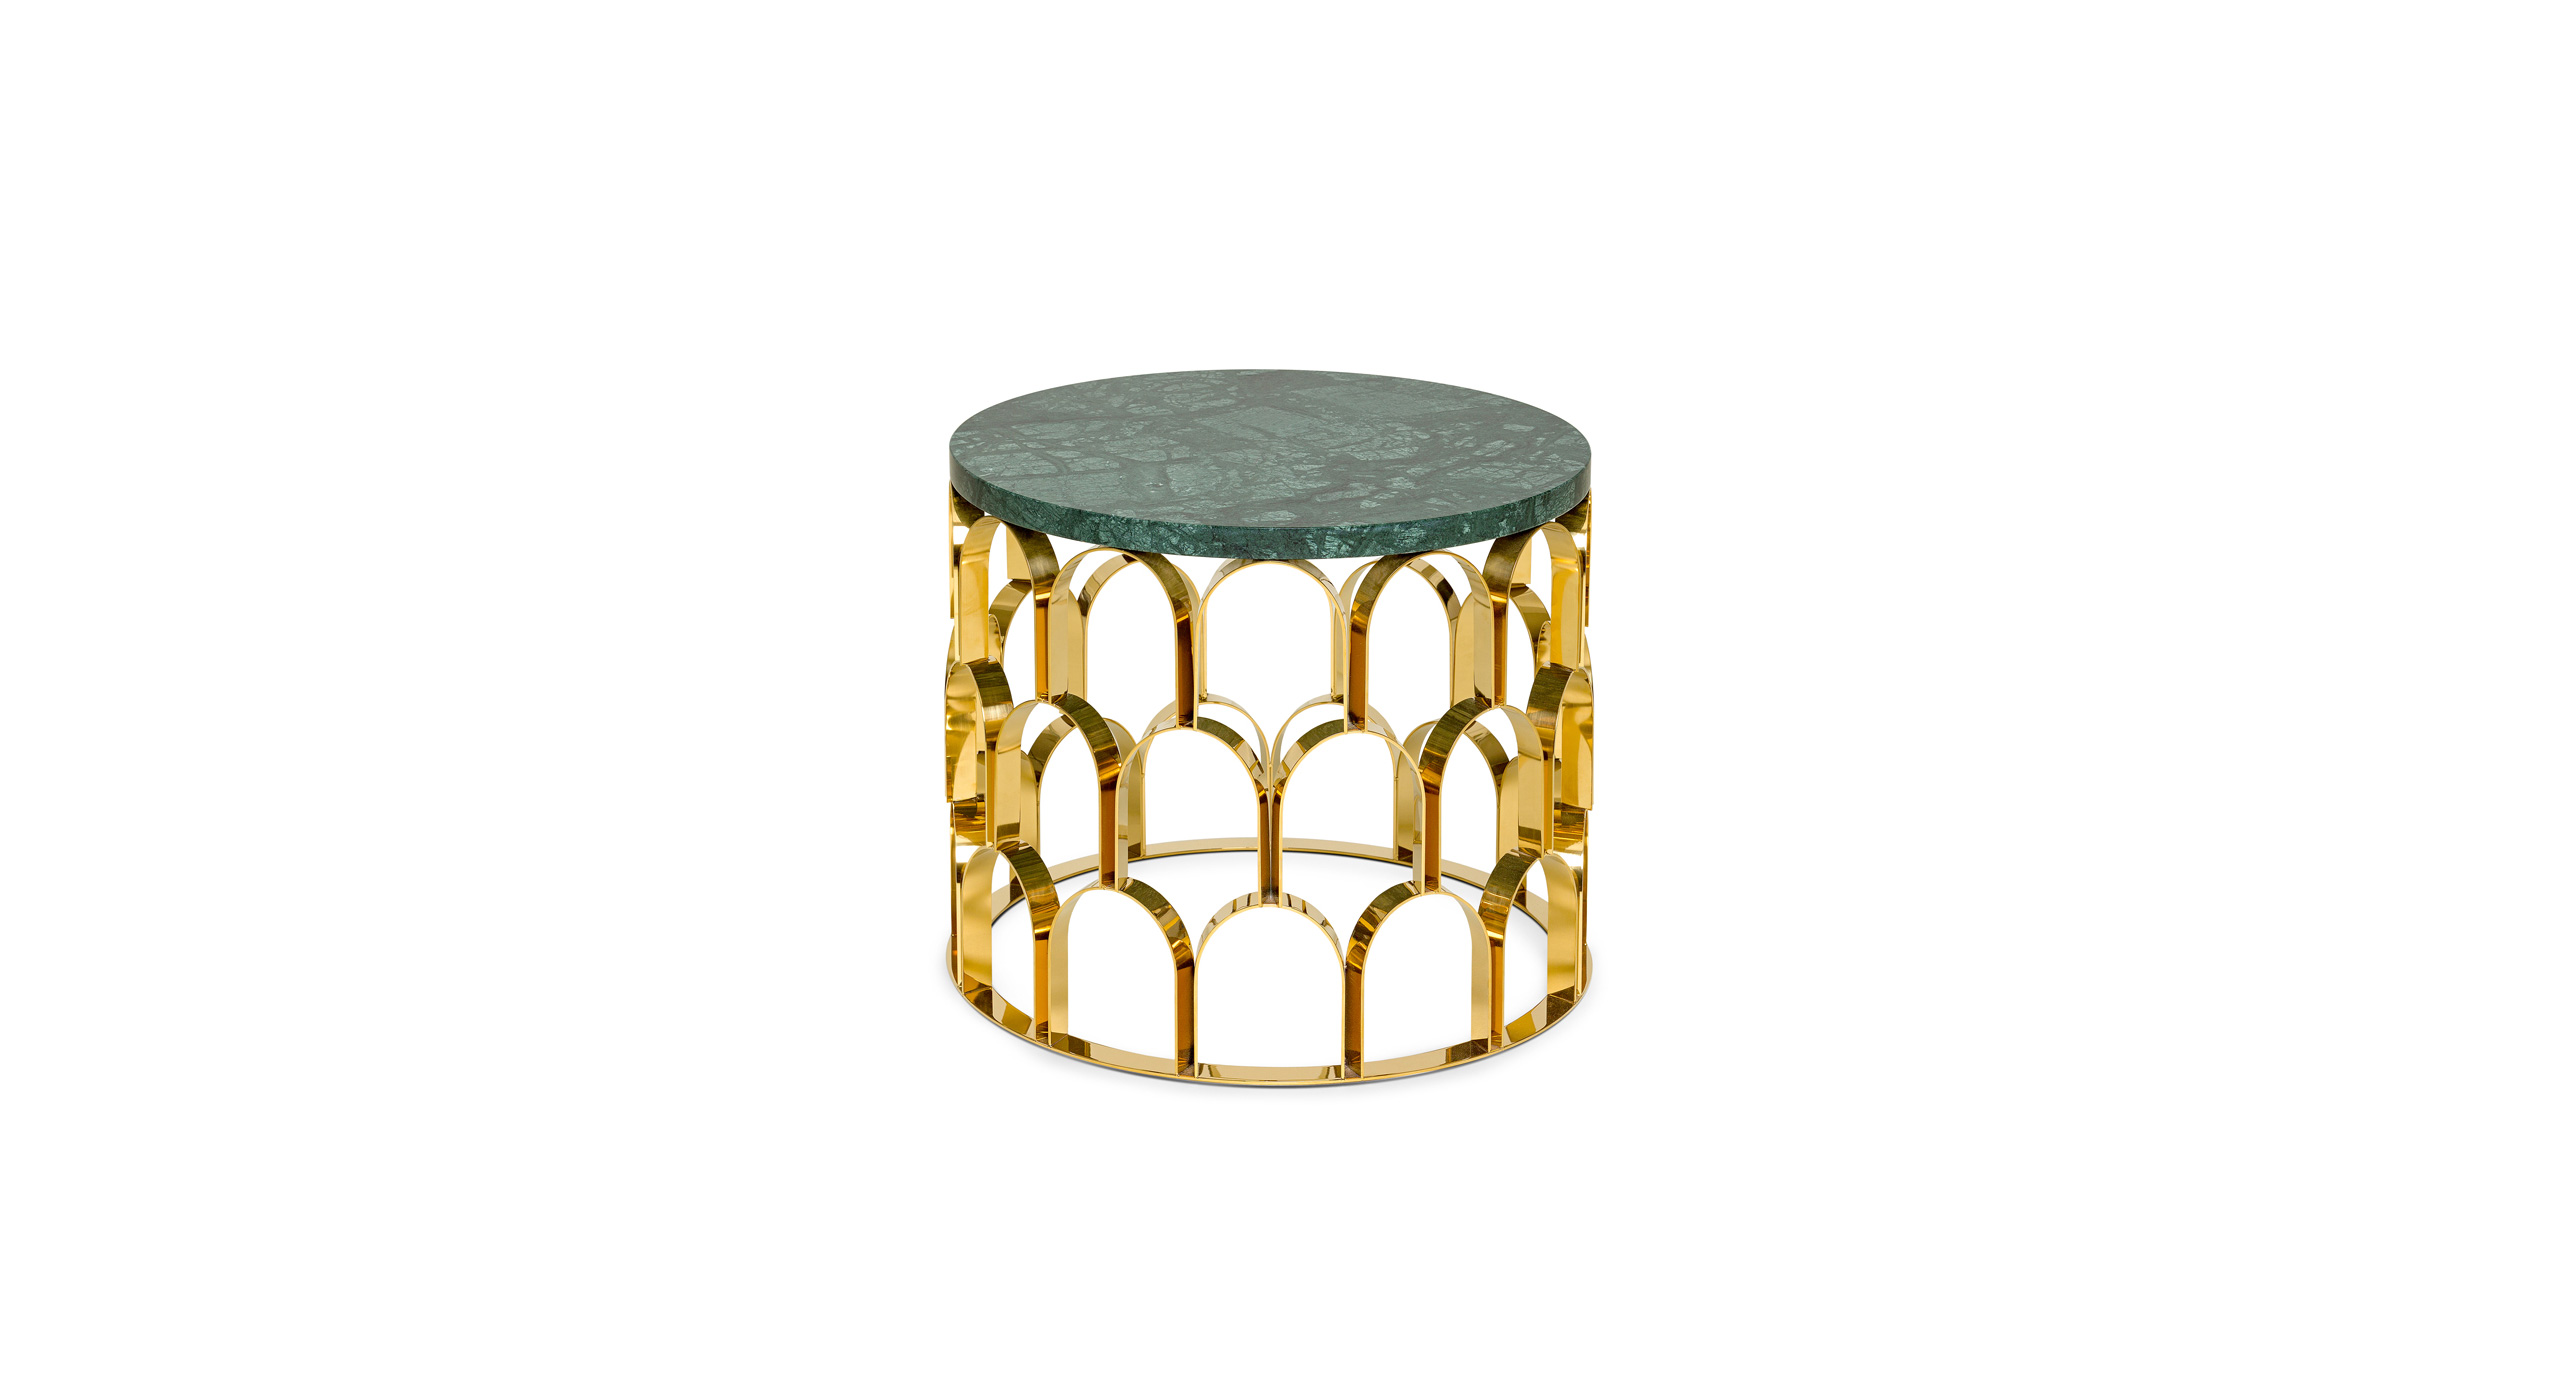 ANANAZ side table in Guatemala Green marble in polished finishing; base in stainless steel coated in Brass finishing in polished finishing. Photo © Ginger & Jagger.